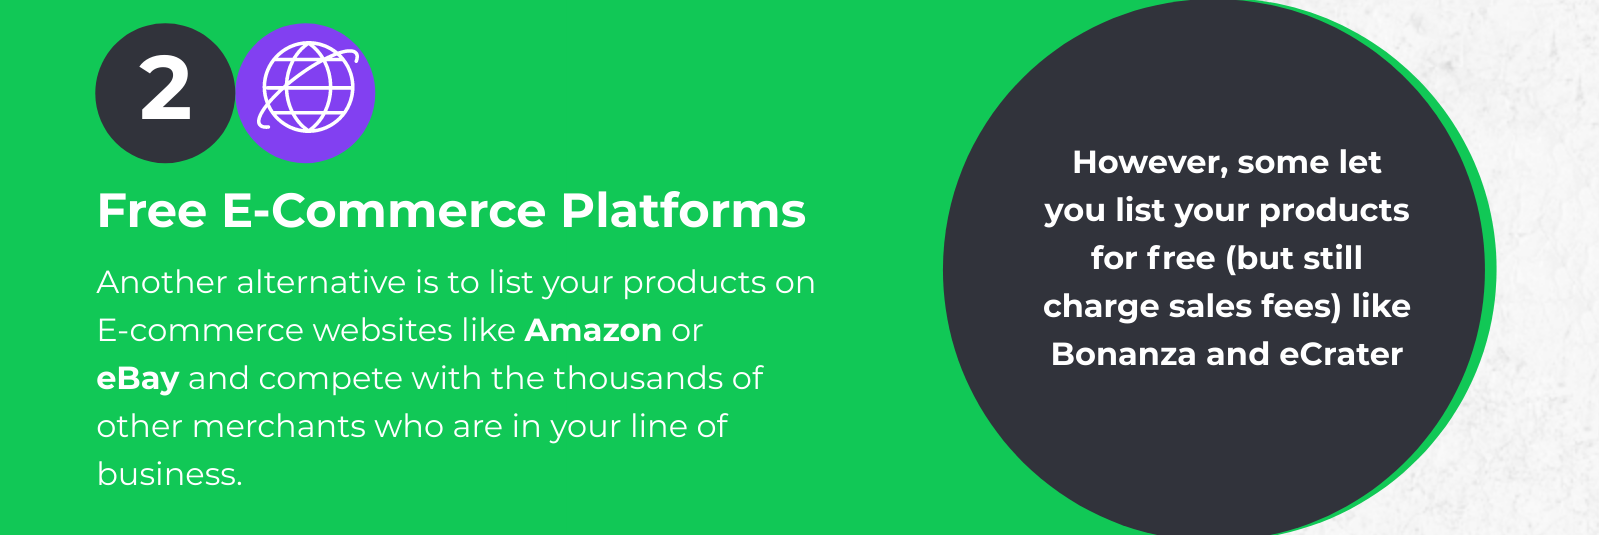 Sell on free ecommerce platforms